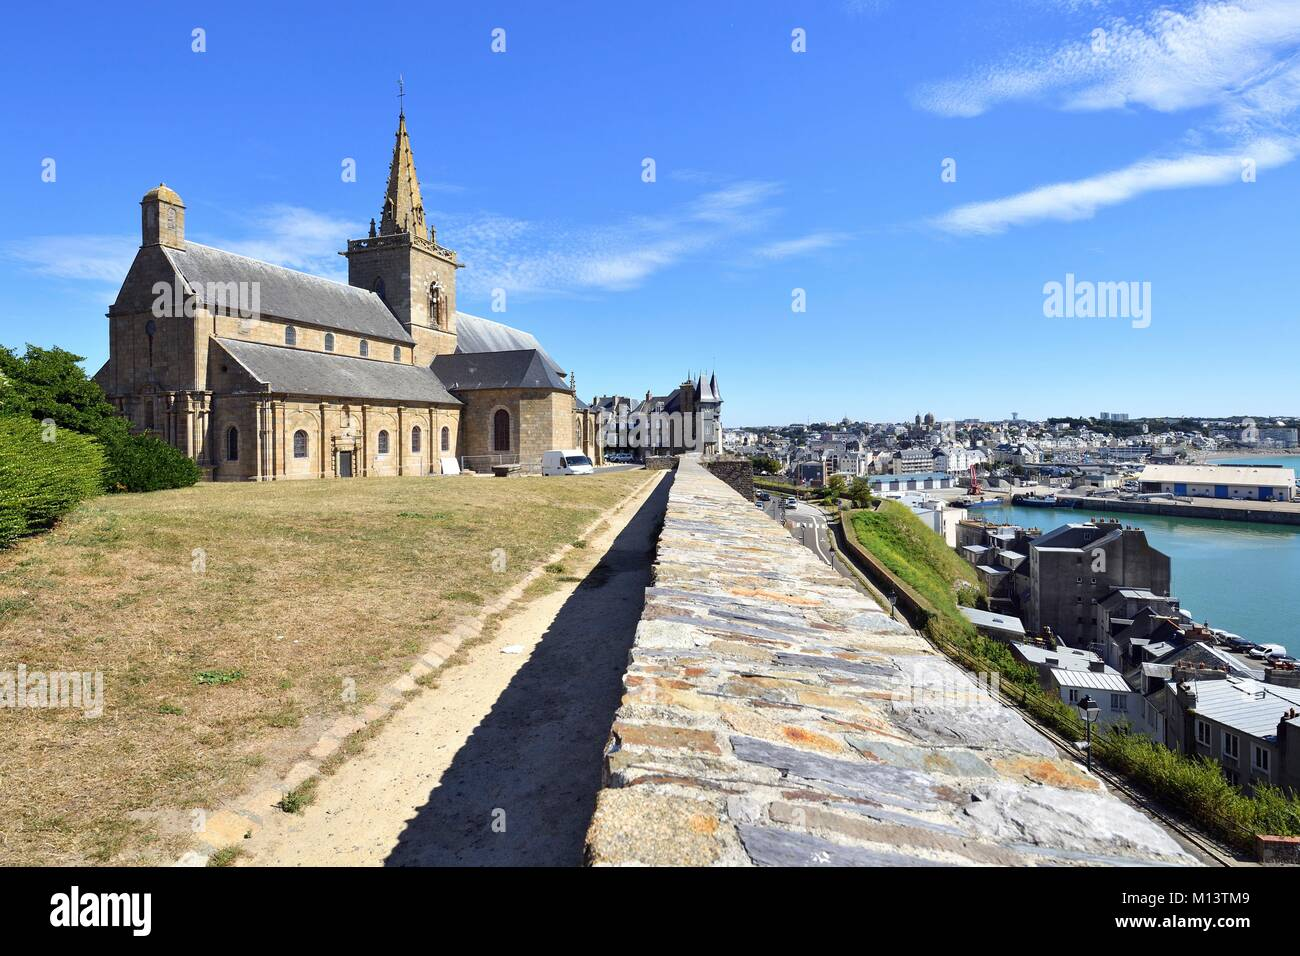 France, Manche, Cotentin, Granville, the Upper Town built on a rocky headland on the far eastern point of the Mont - Stock Image